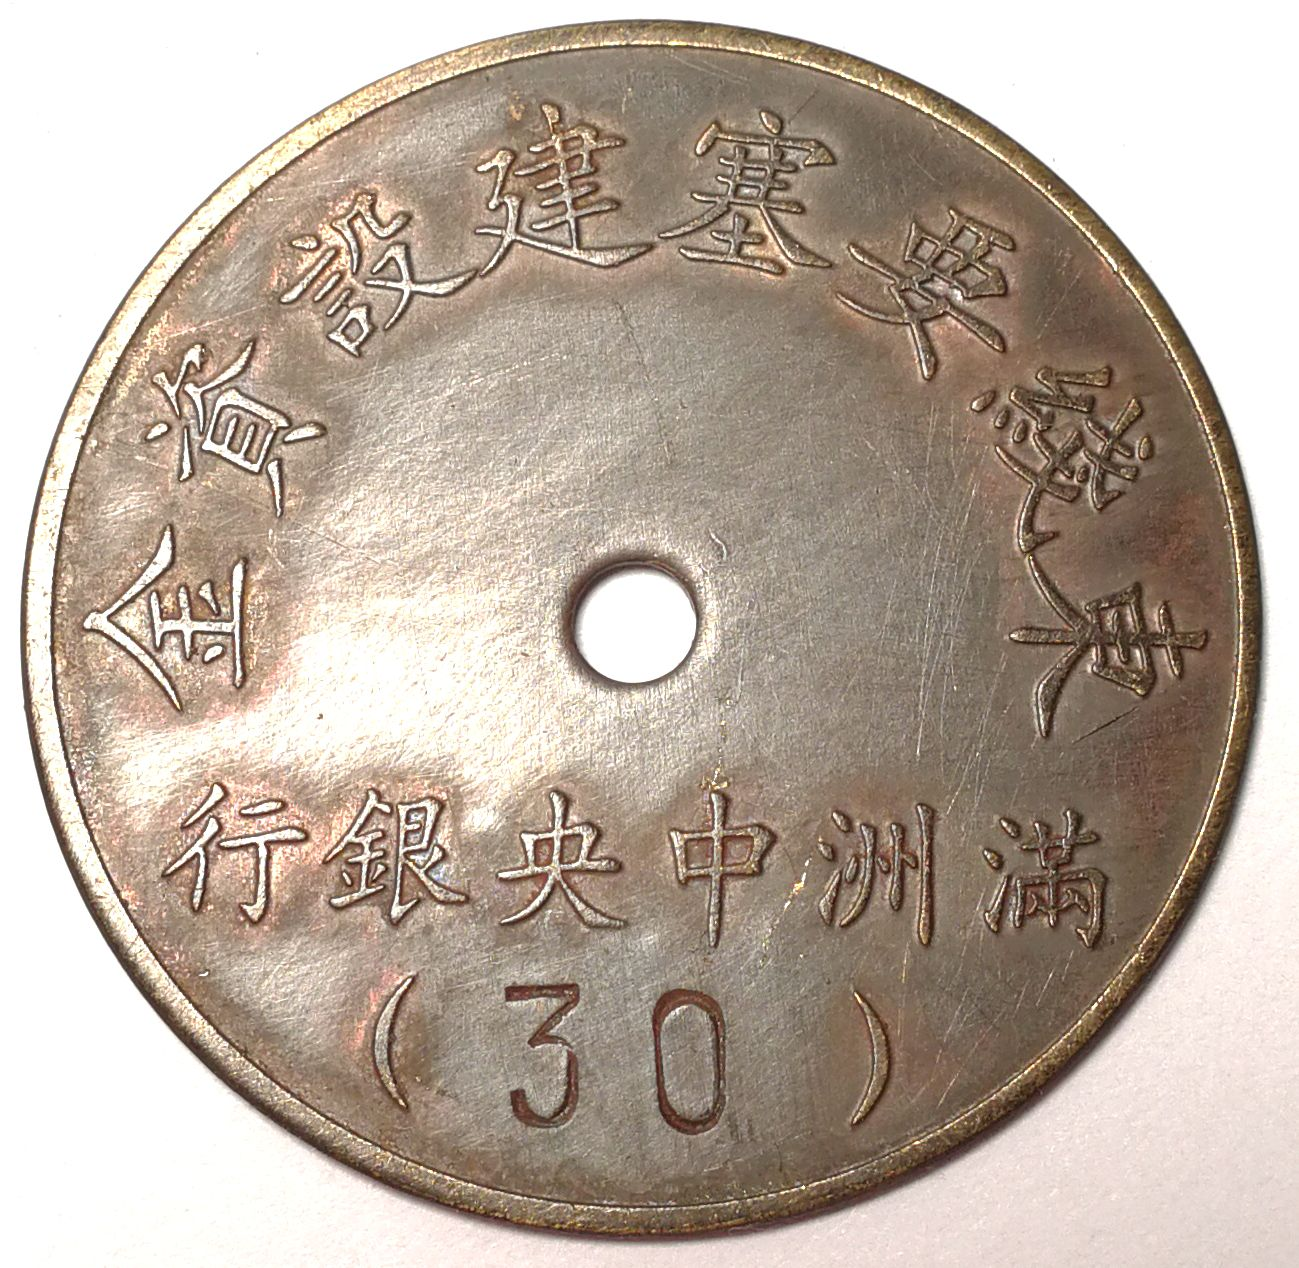 BT557, Manchukuo East Line Fortresses Construction Fund, 30 Yen, 1944